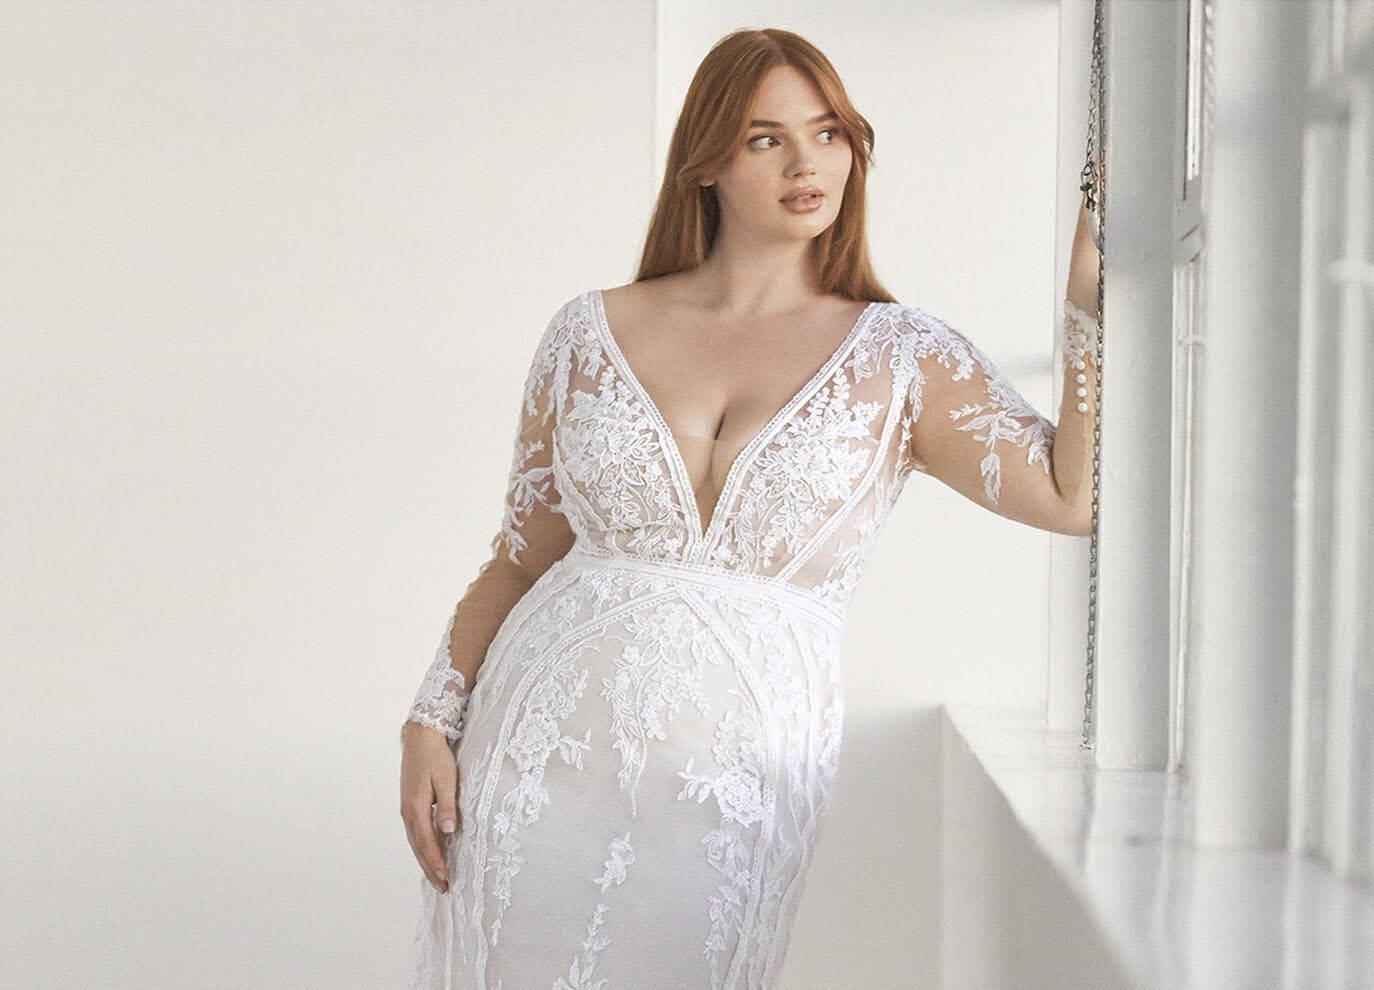 Plus size model wearing a Bridal Gown